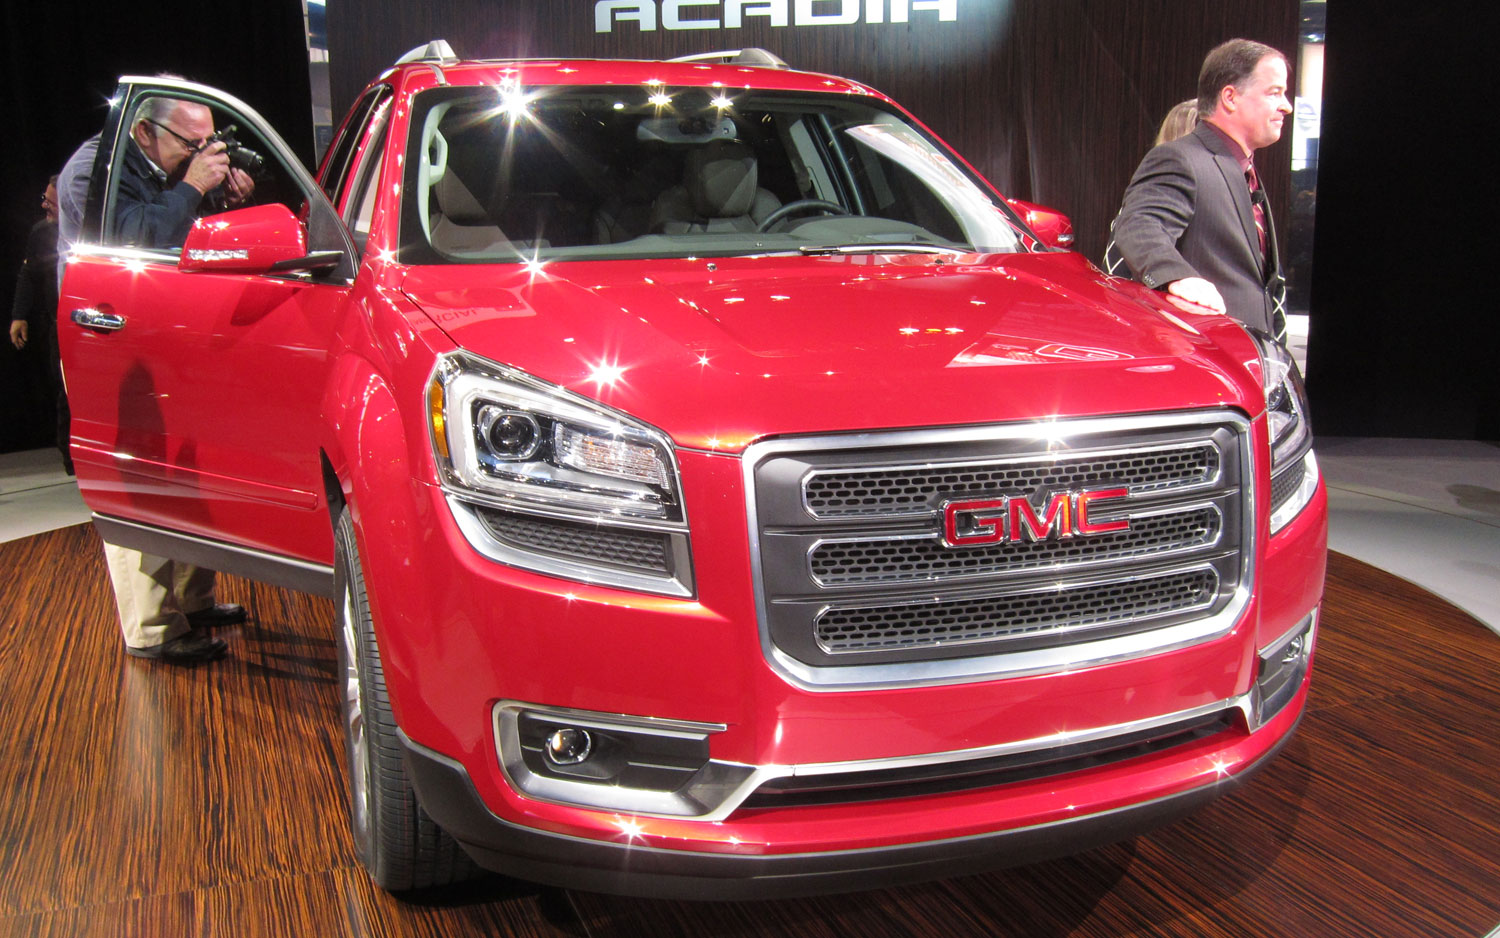 2013 GMC Acadia Front View1